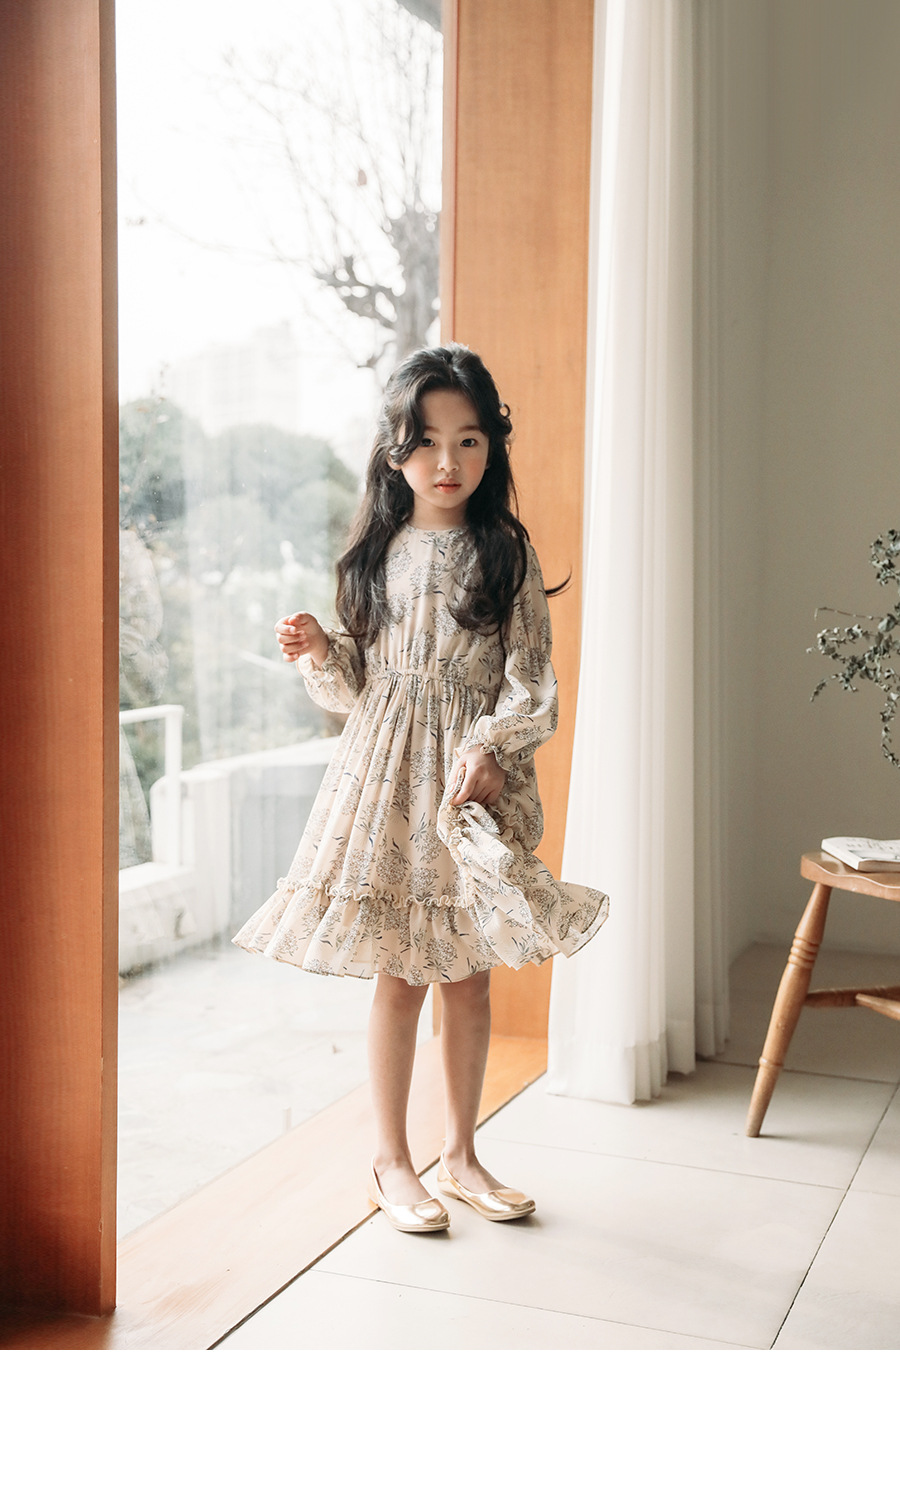 chiffon floral pattern dresses for girls of 12 10 11 14 2 4 6 years old High Quality children dresses 8 year long sleeve clothes 5 7 9 13 15 16 Years little teenage girls spring dresses for girls children girl spring dress (3)